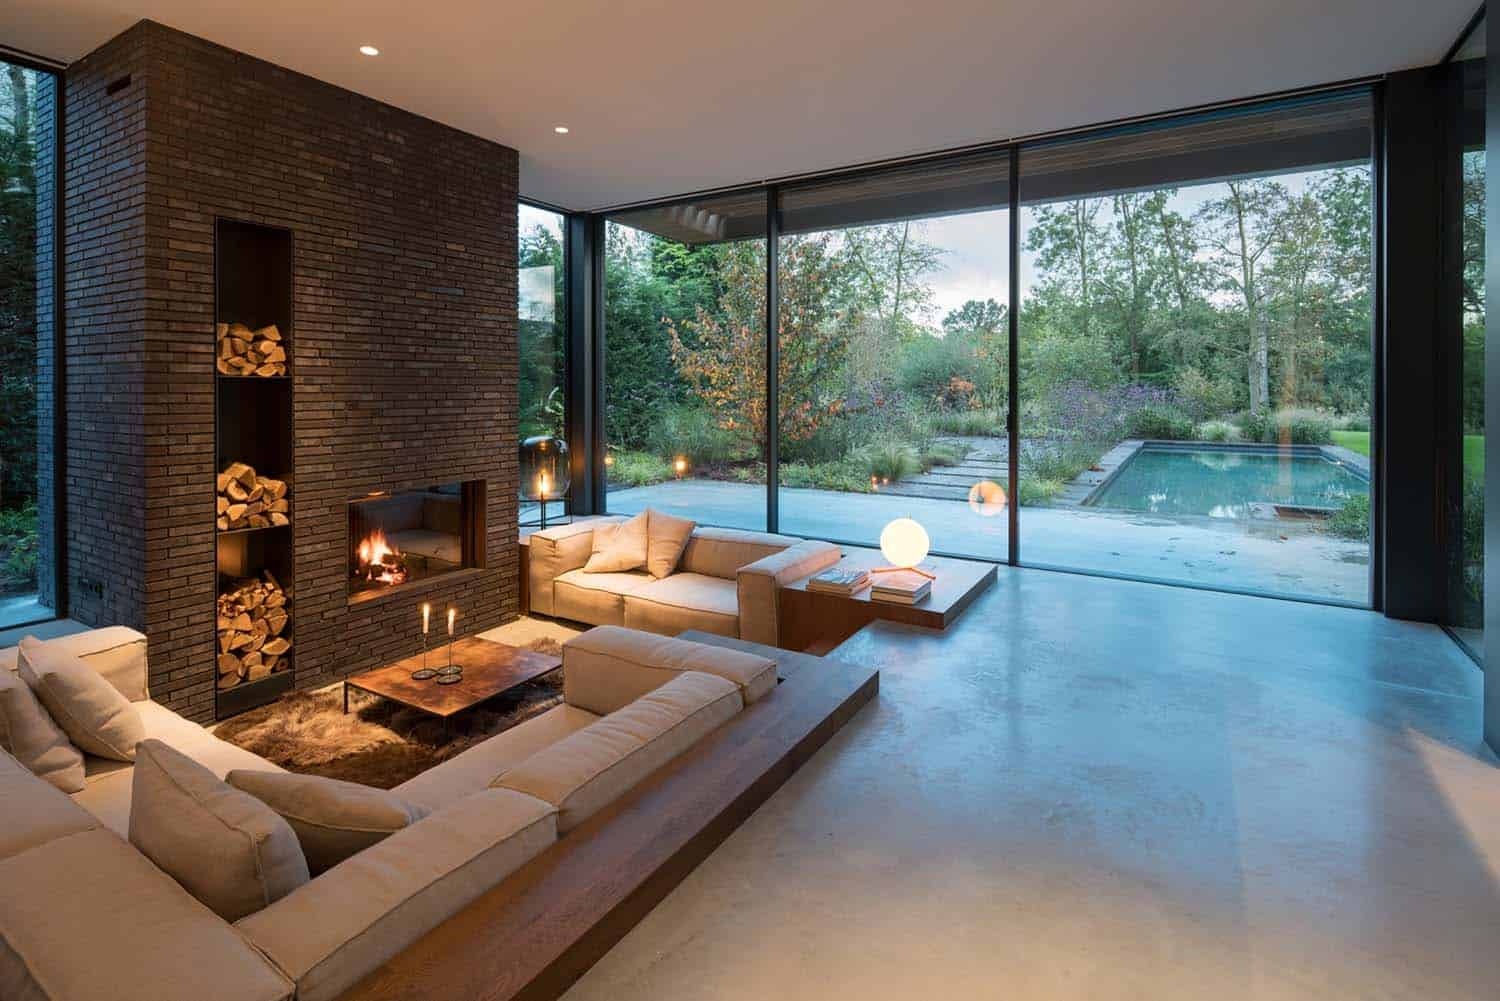 Modern villa in Amsterdam offers fabulous indoor-outdoor connectivity